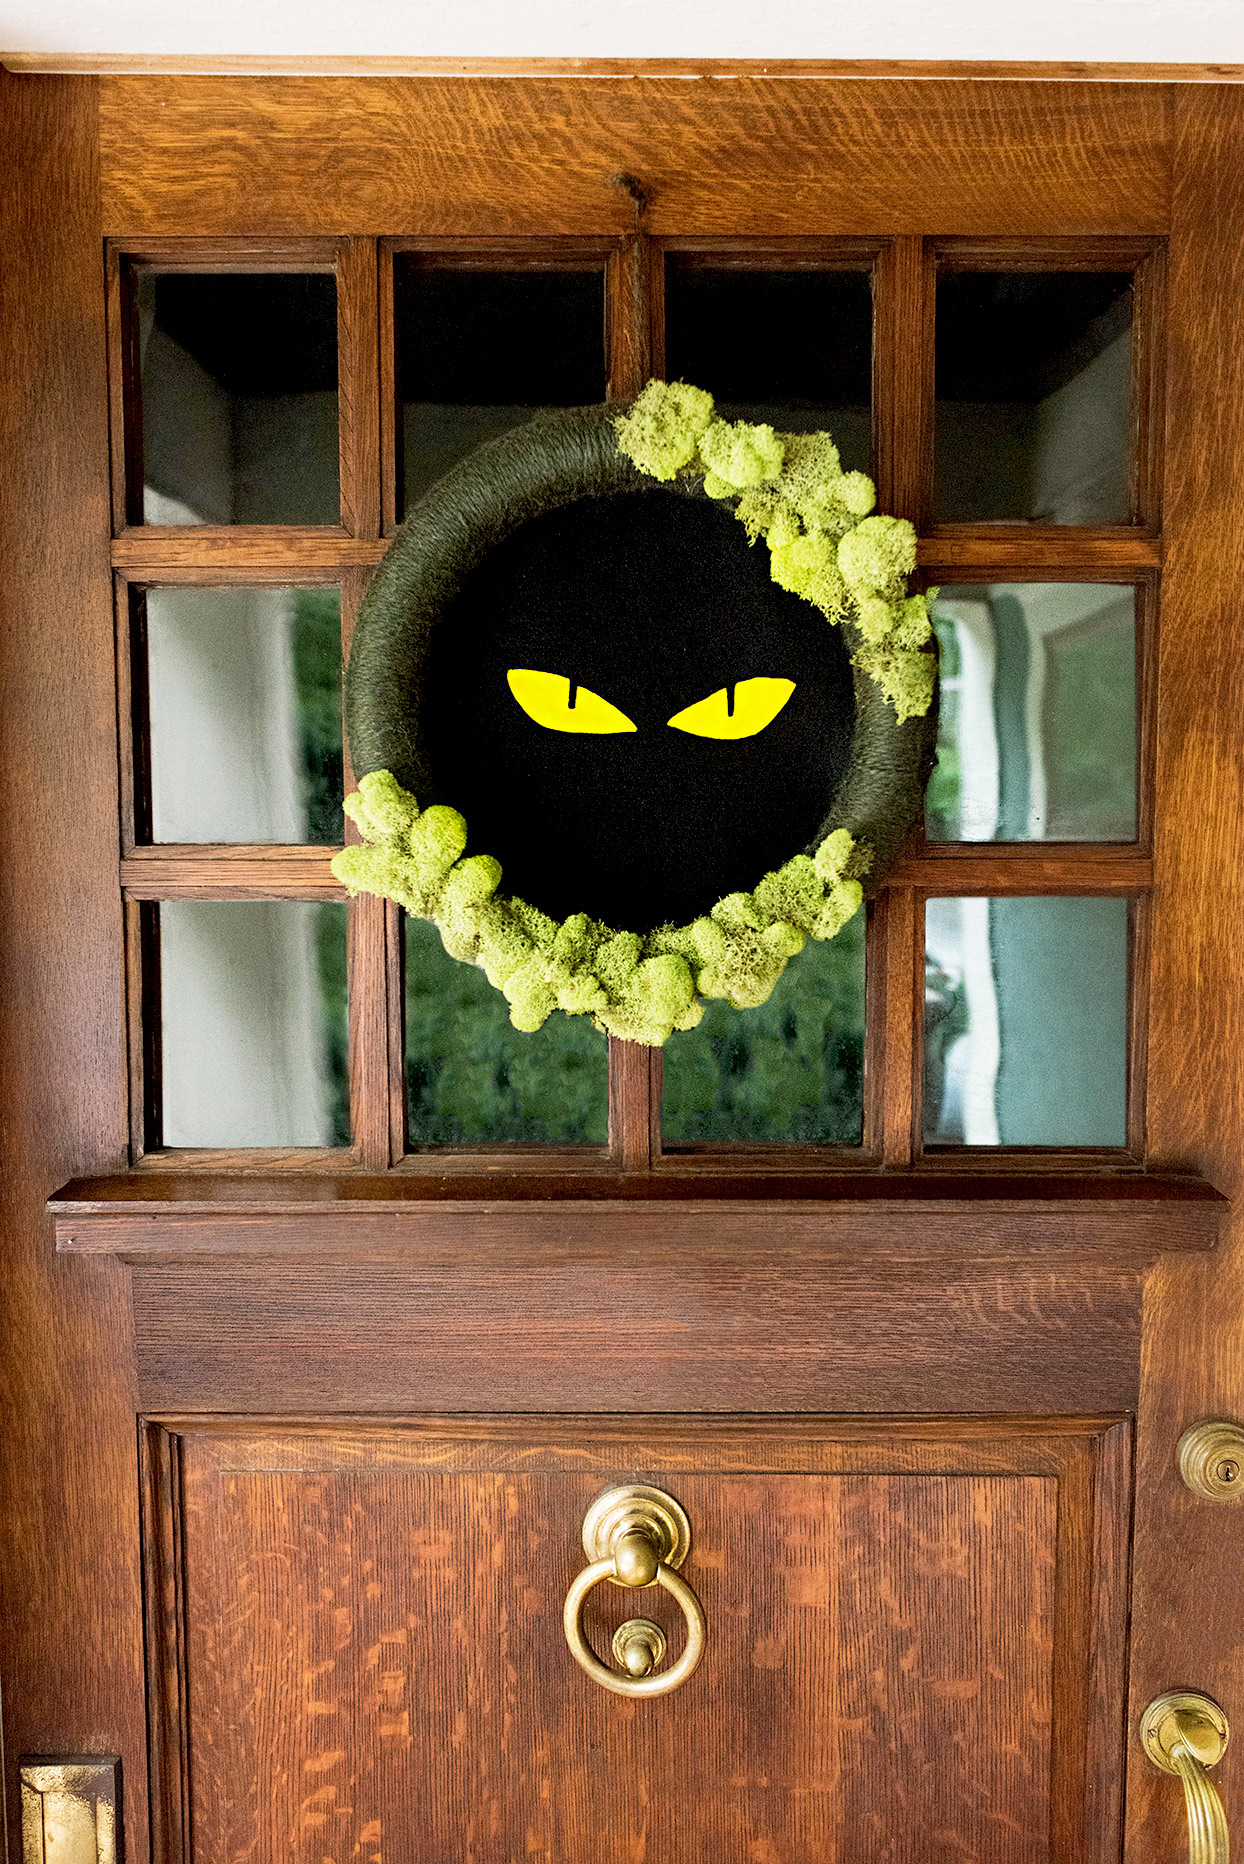 Wreath with yellow eyes, moss